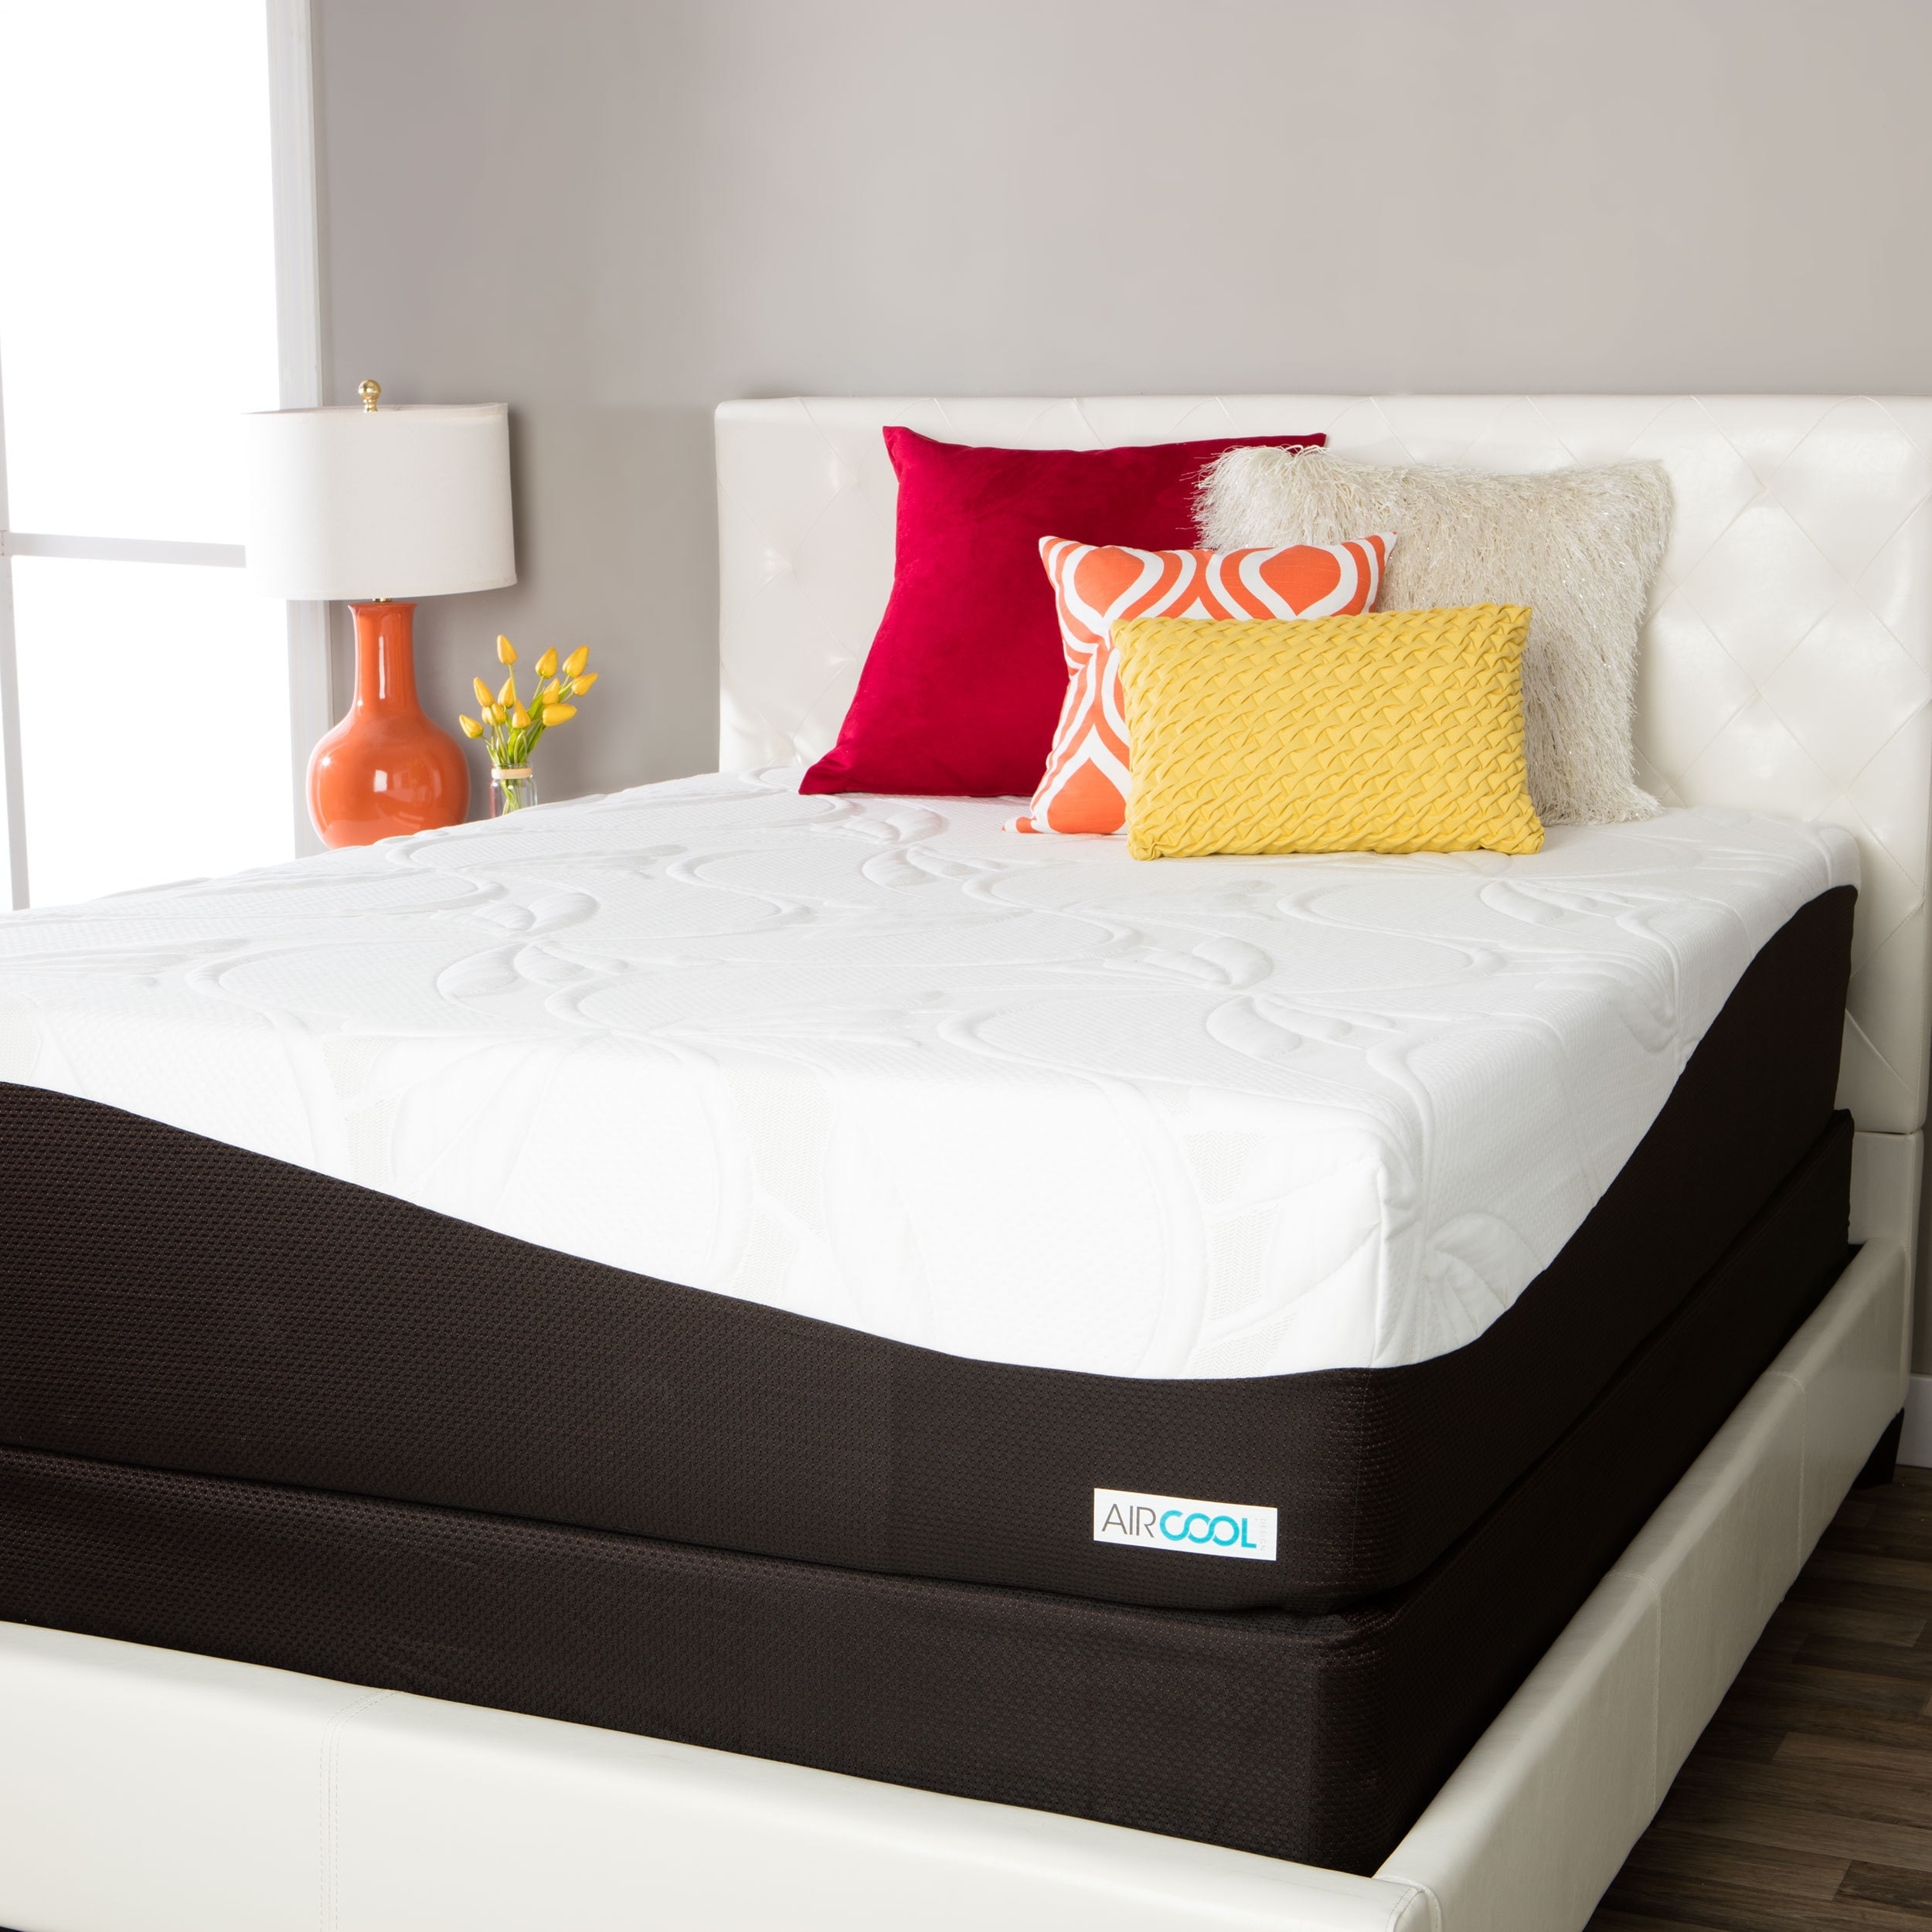 buy popular ceeb0 01351 ComforPedic from Beautyrest Choose Your Comfort 14-inch Gel Memory Foam  Mattress Set